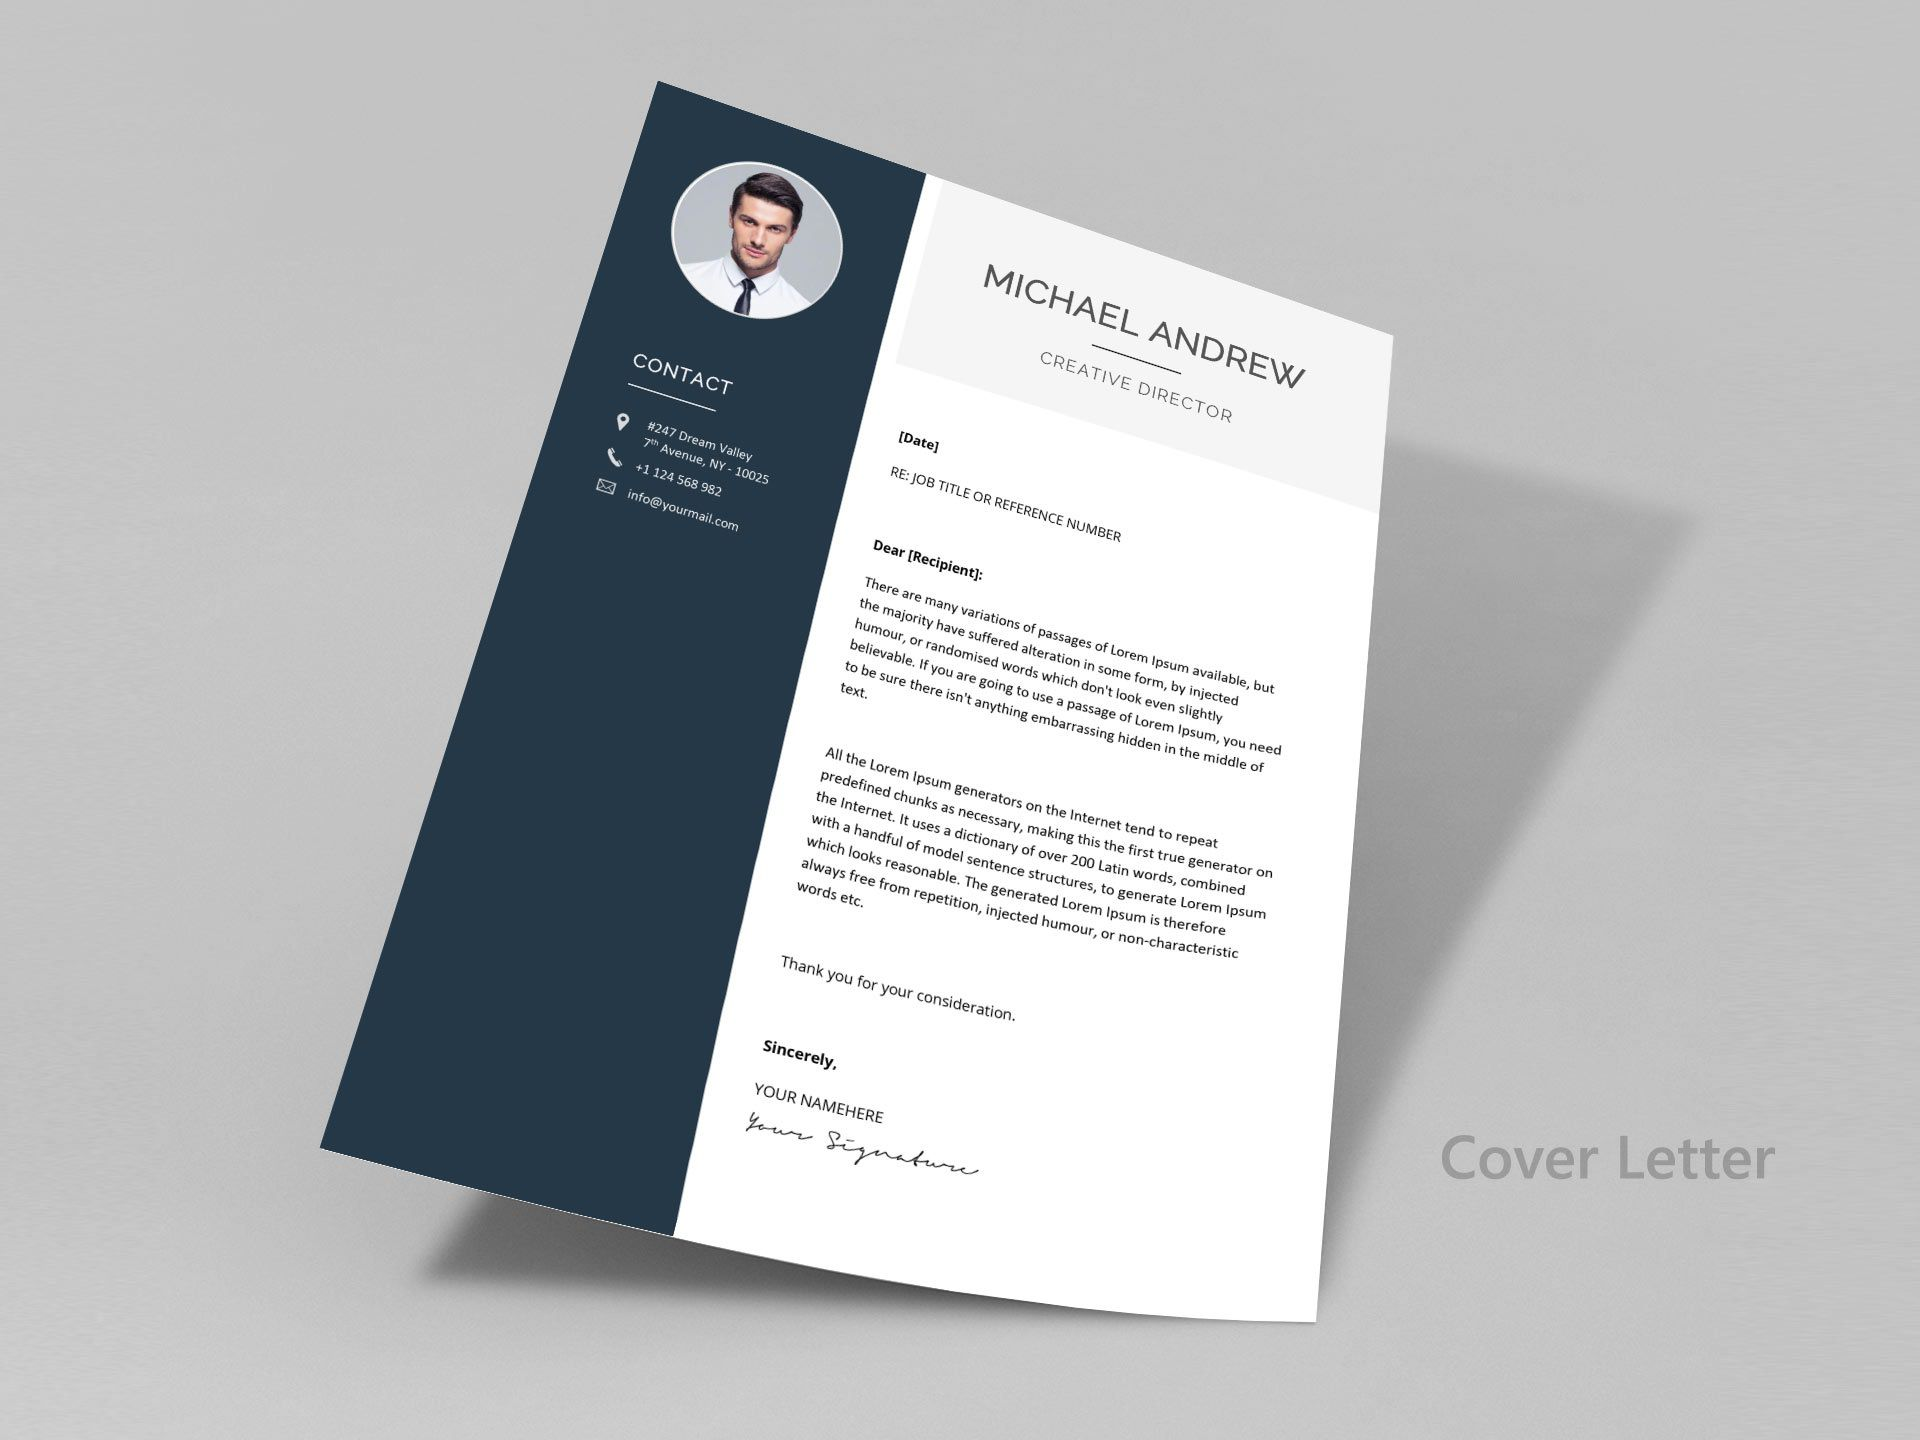 007 Fantastic Professional Resume Template 2019 Free Download Highest Quality  CvFull